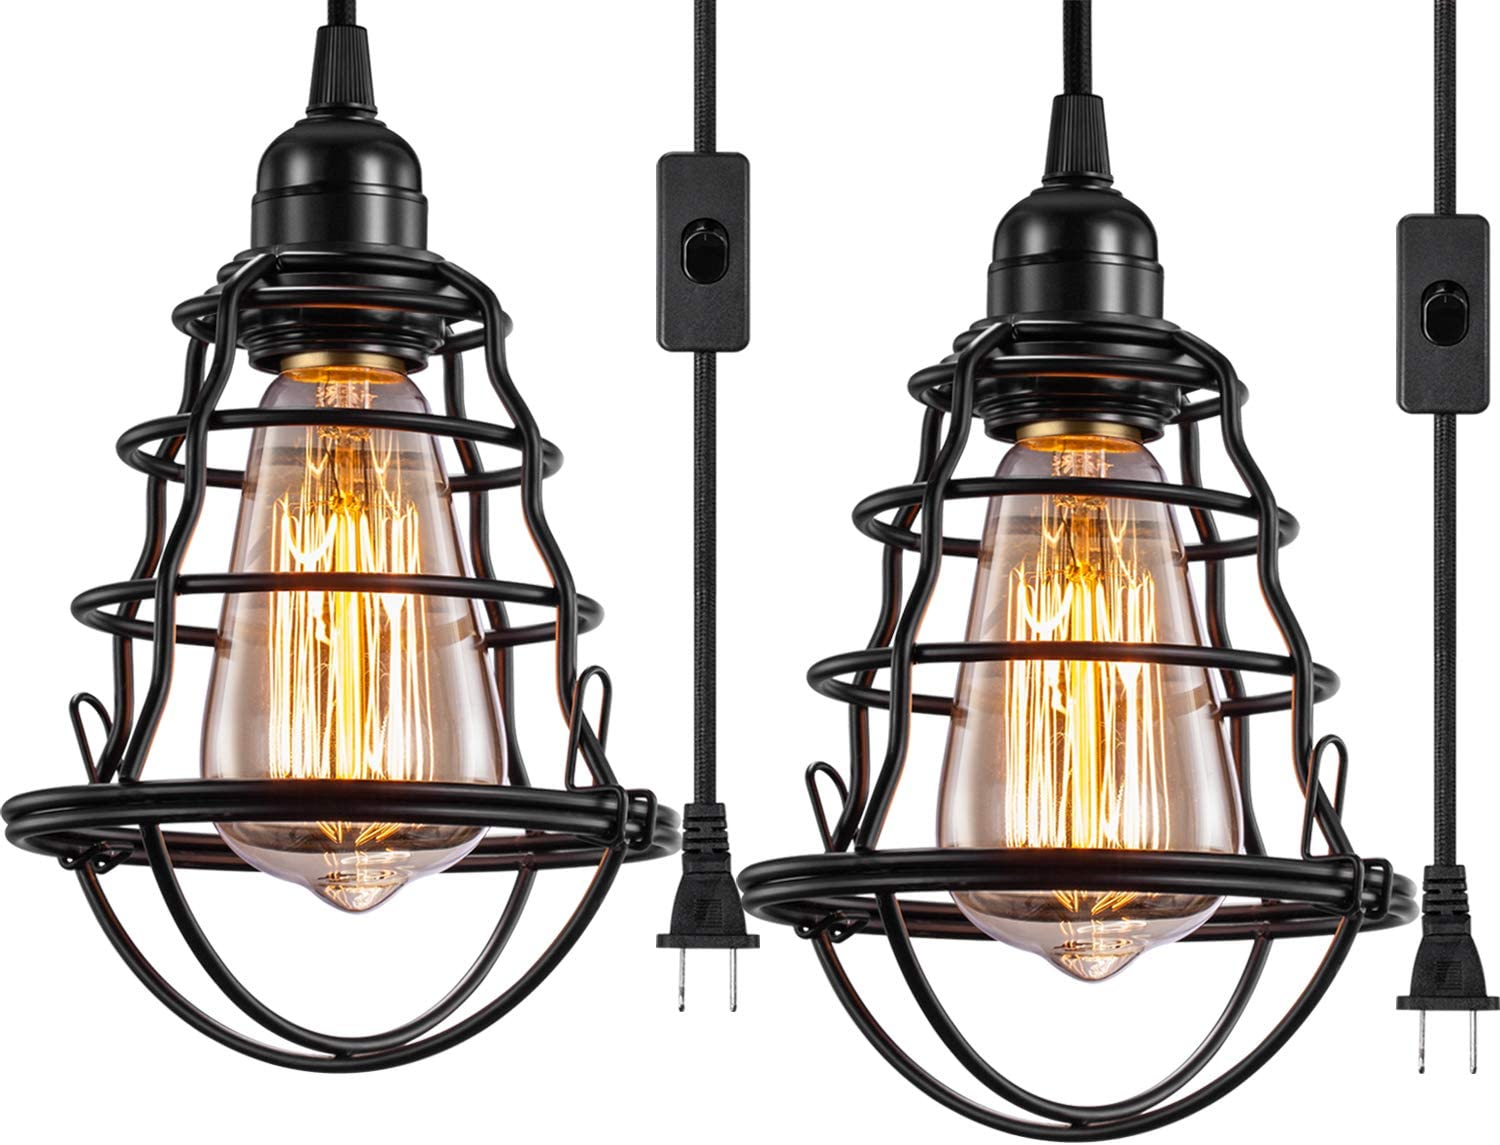 Industrial Plug In Pendant Light Vintage Hanging Cage Pendant Lighting E26 E27 Mini Pendant Light Edison Plug In Light Fixture On Off Switch 2 Pack